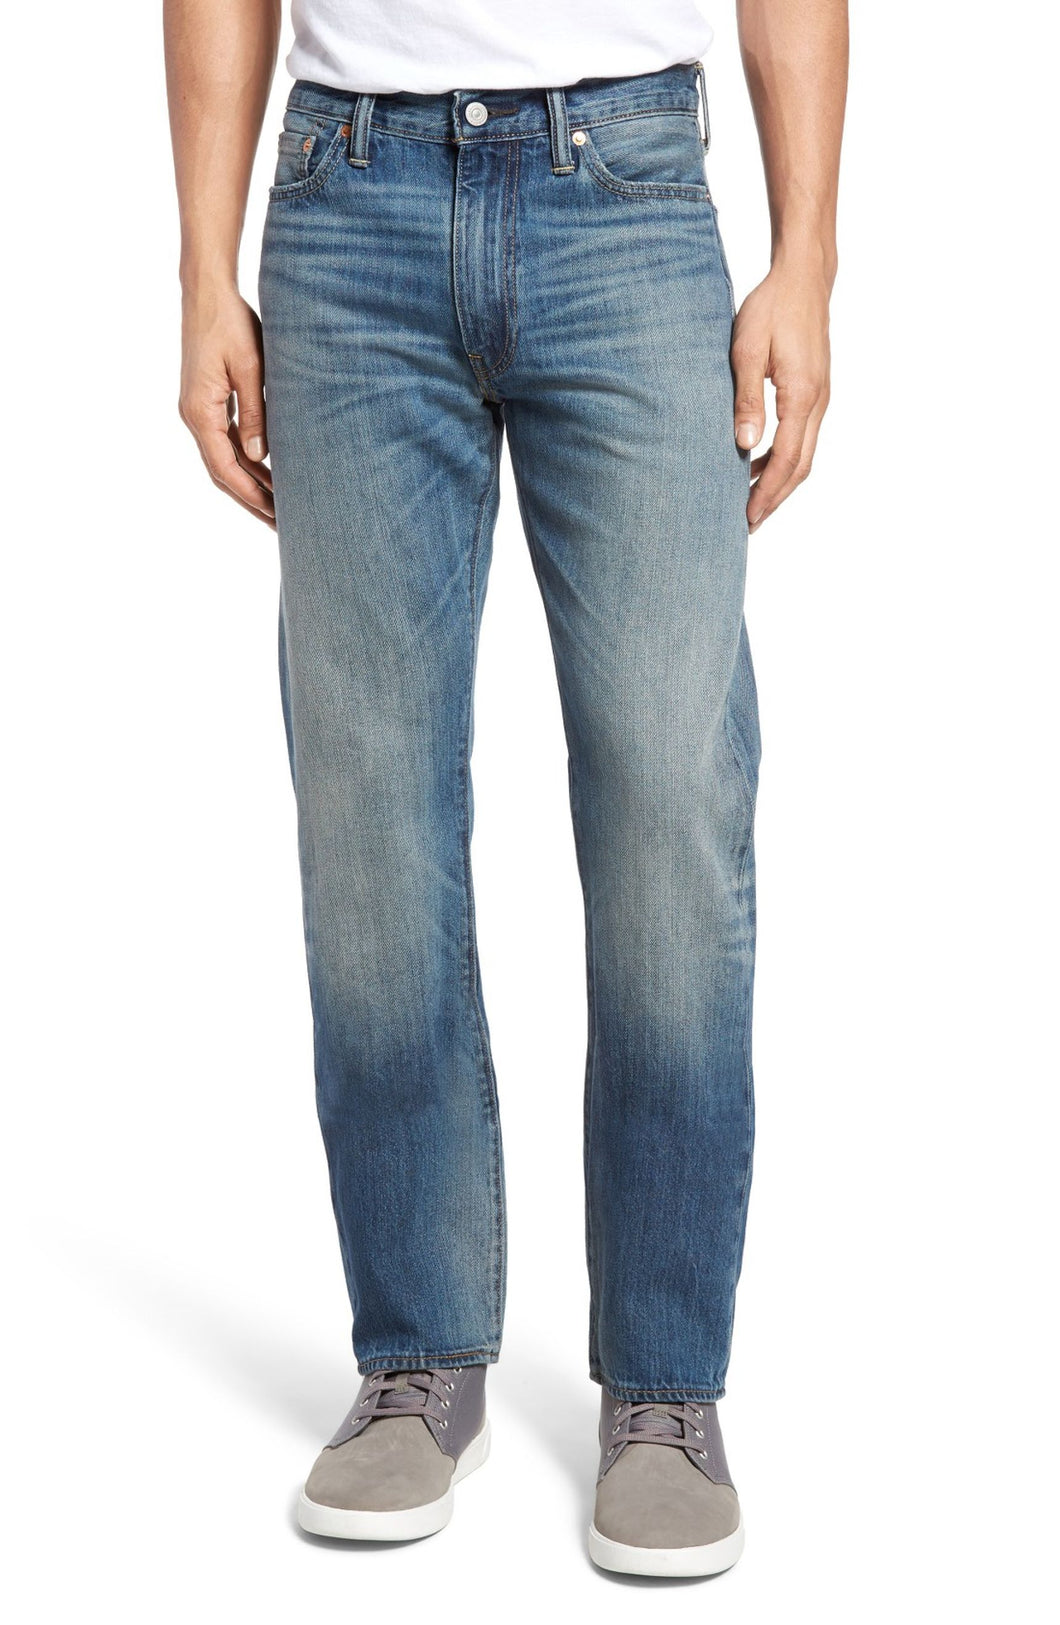 Levis Mens 511 Slim Fit Jean - Figure 4